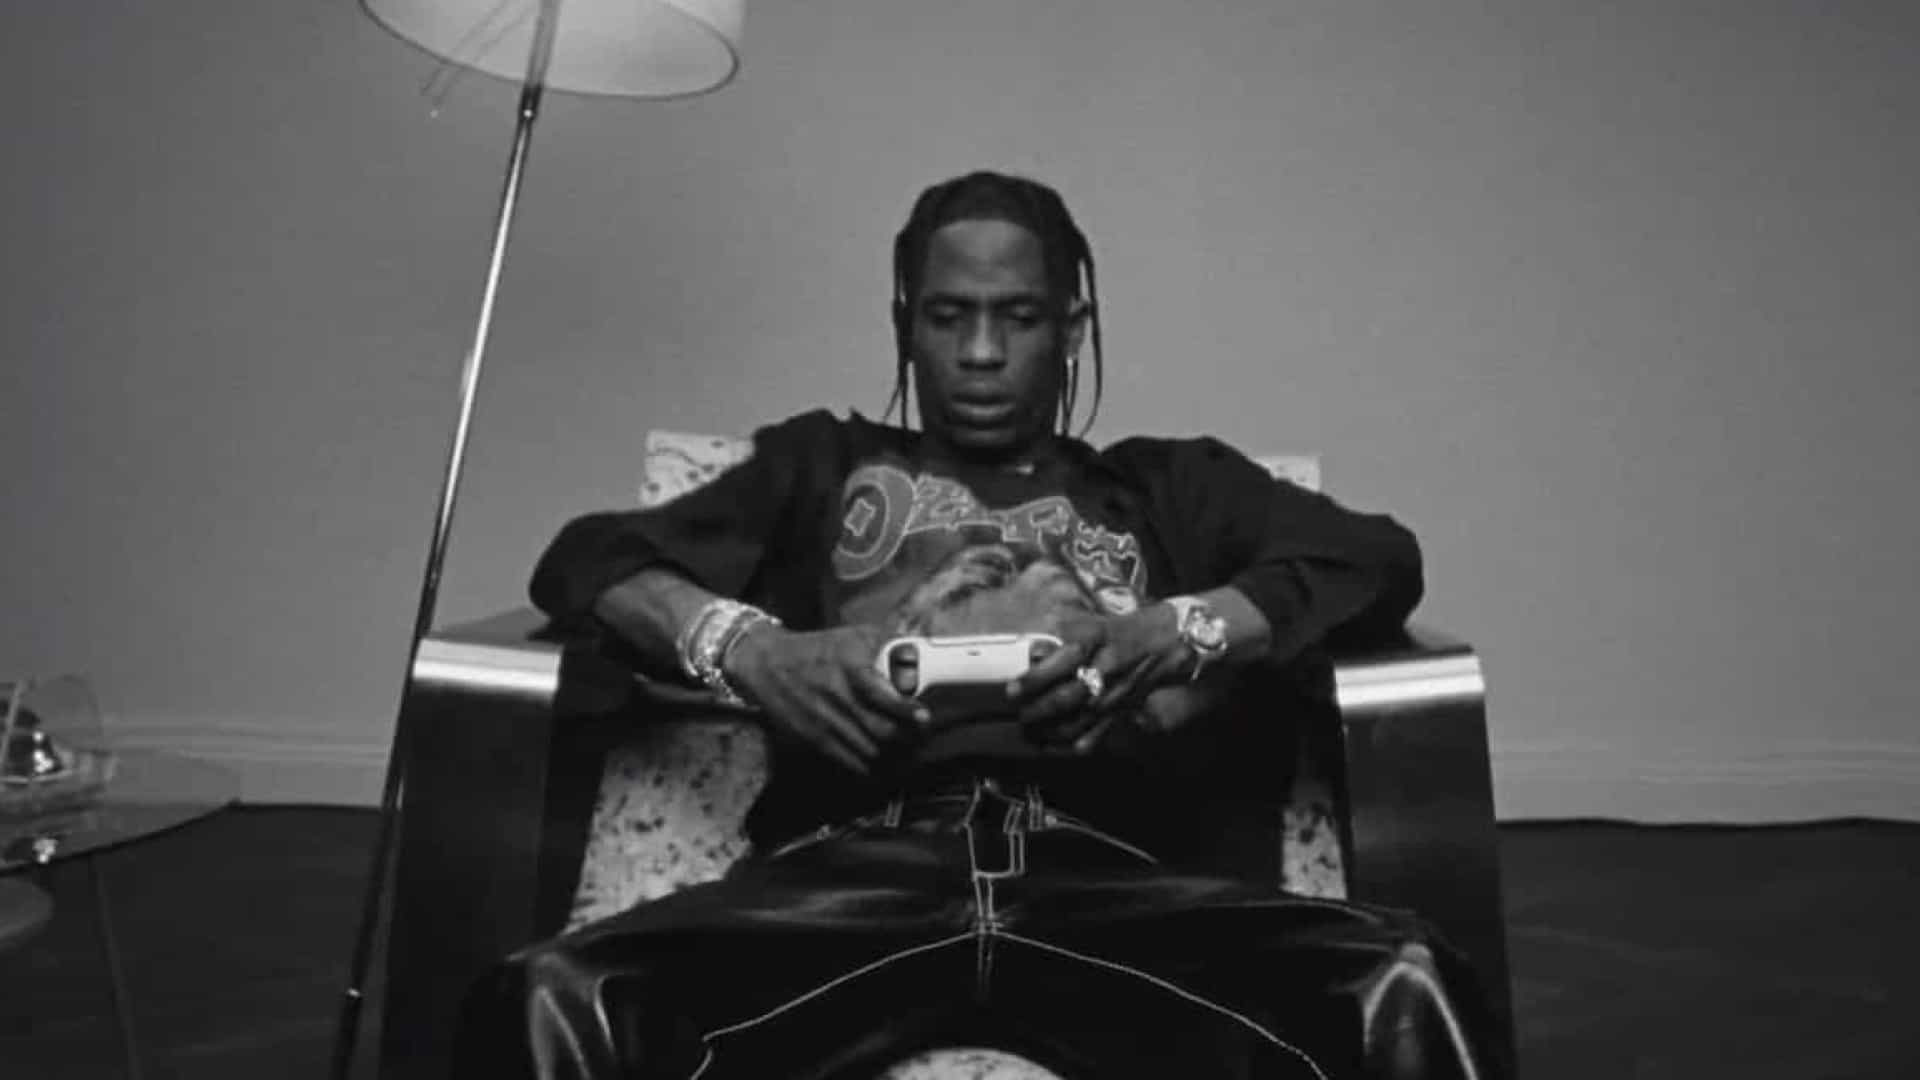 Sony aliou-se ao rapper Travis Scott para promover a PlayStation 5